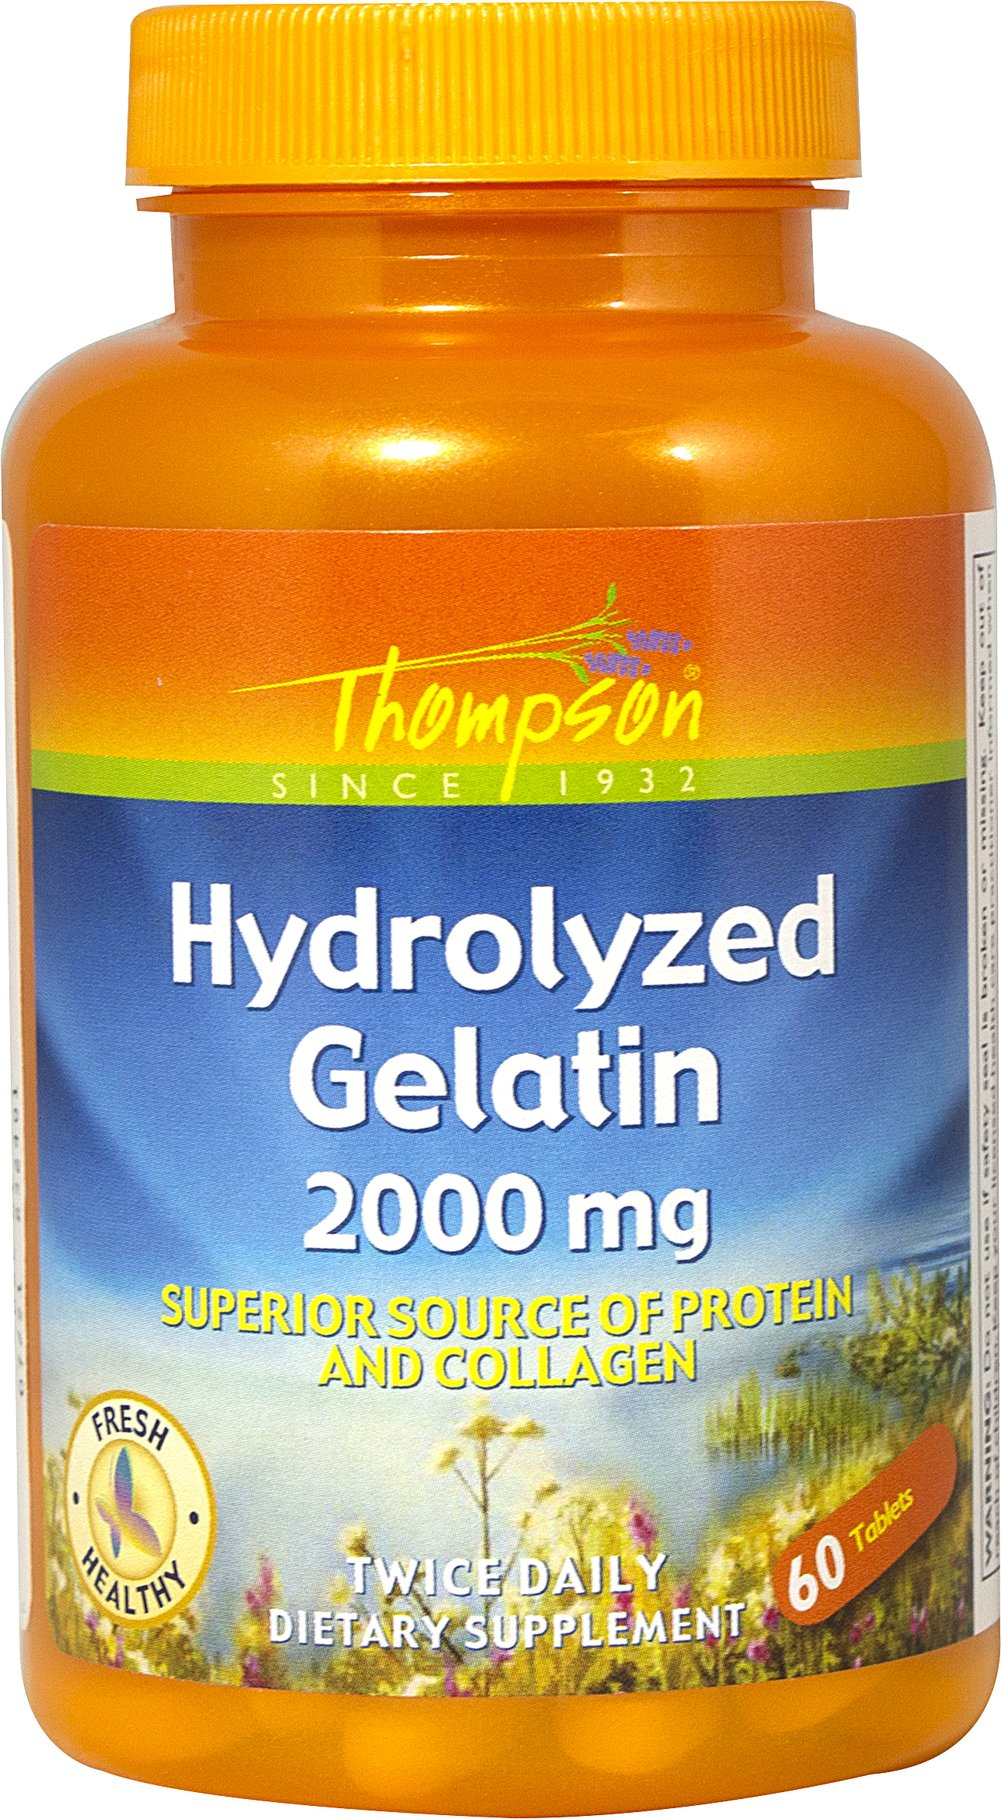 Hydrolyzed Gelatin 2000 mg